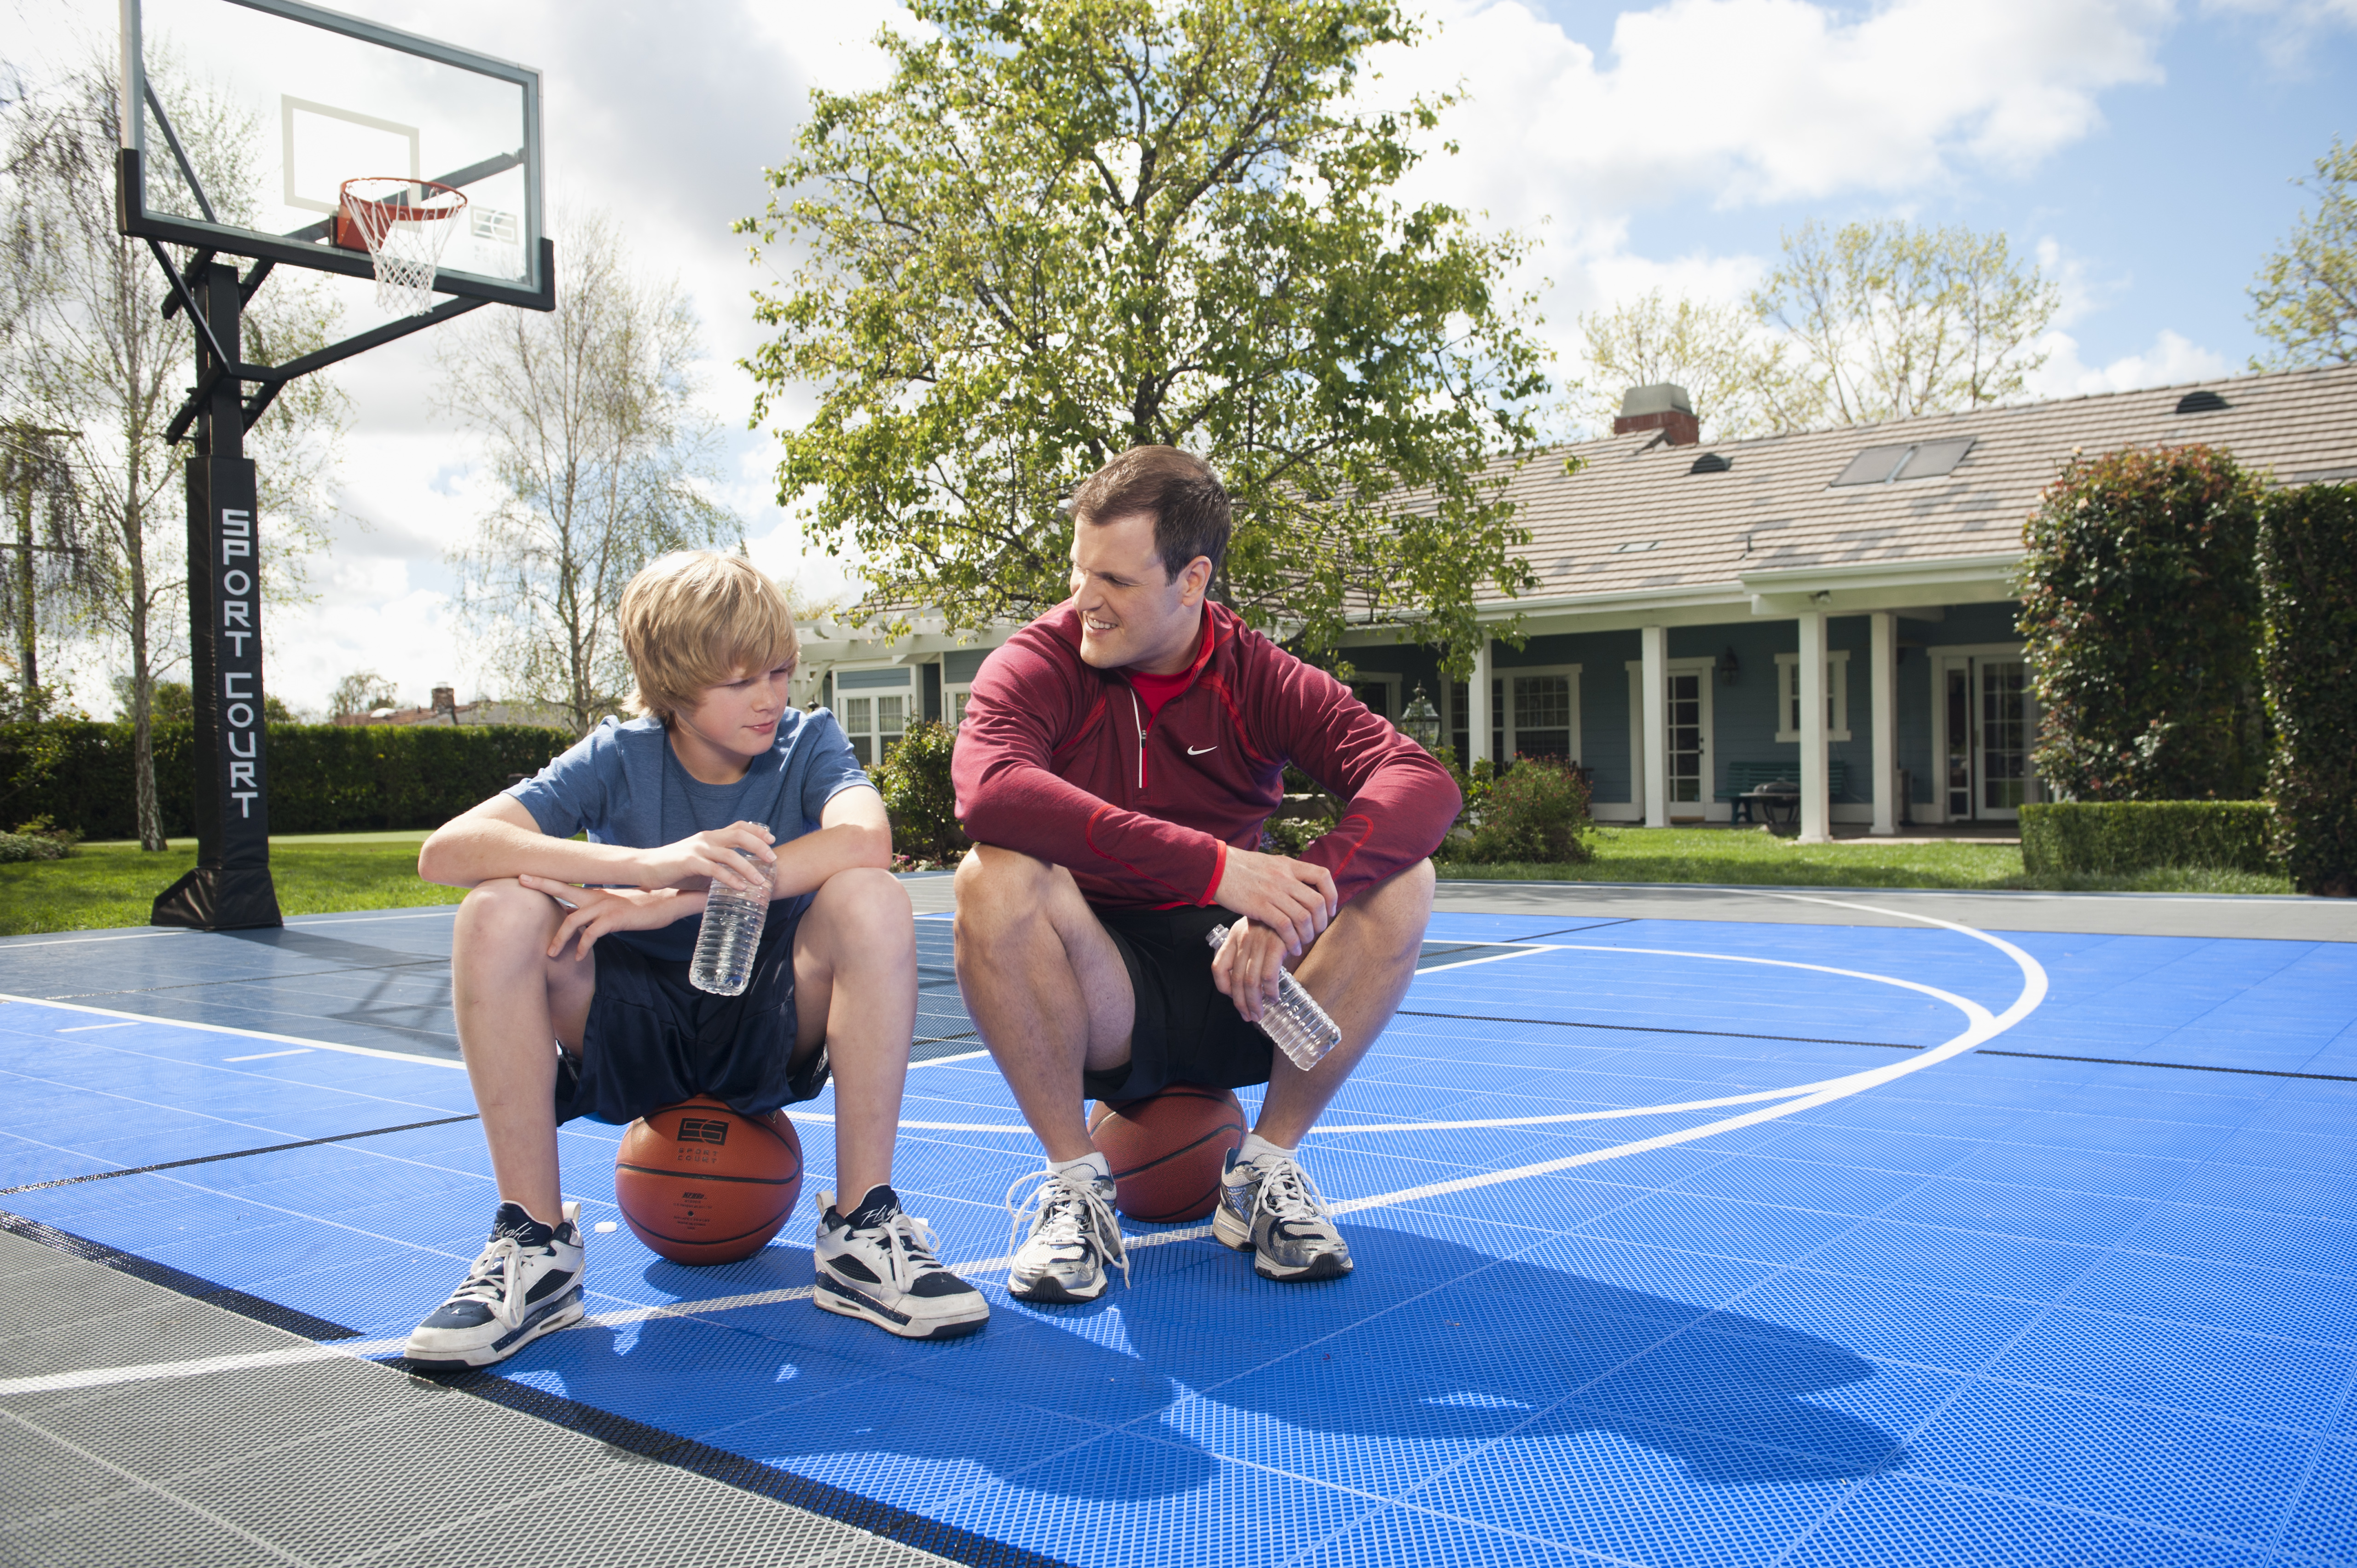 Importance of Staying Hydrated While Having Fun on Your Home Basketball Court